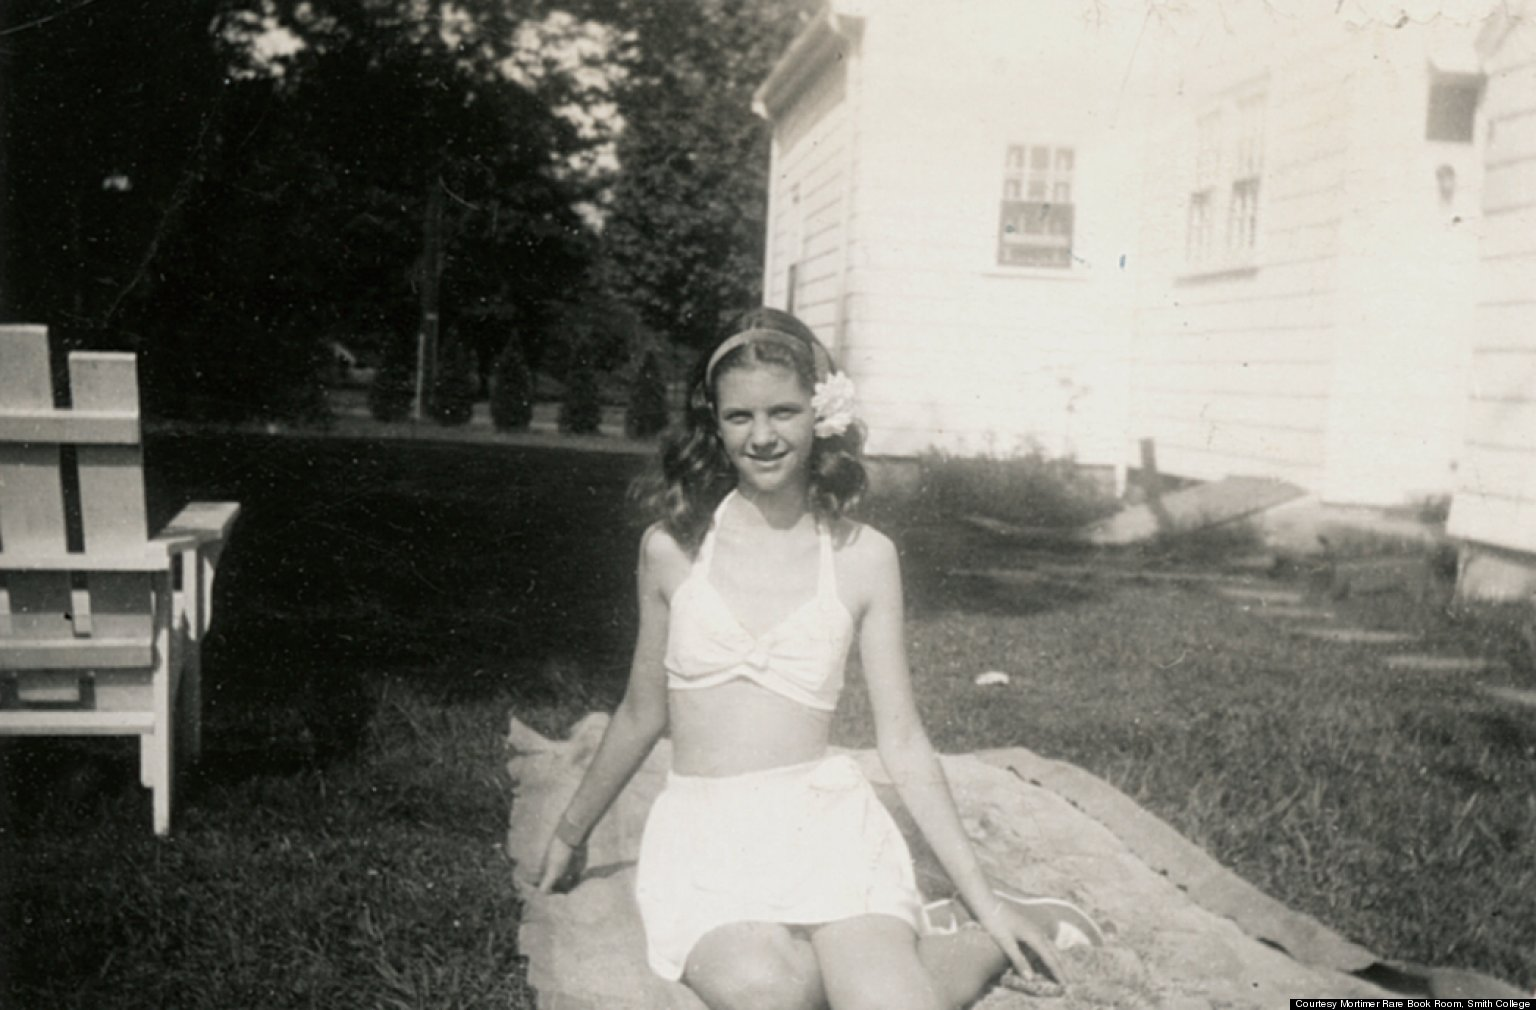 the life of sylvia plath As an homage to the celebrated american writer, sylvia plath, her creative contemporaries united to read from and discuss her most celebrated worksrecorded in 1975, the program was primarily devoted towards the dark and feminist undertones in plath's work.